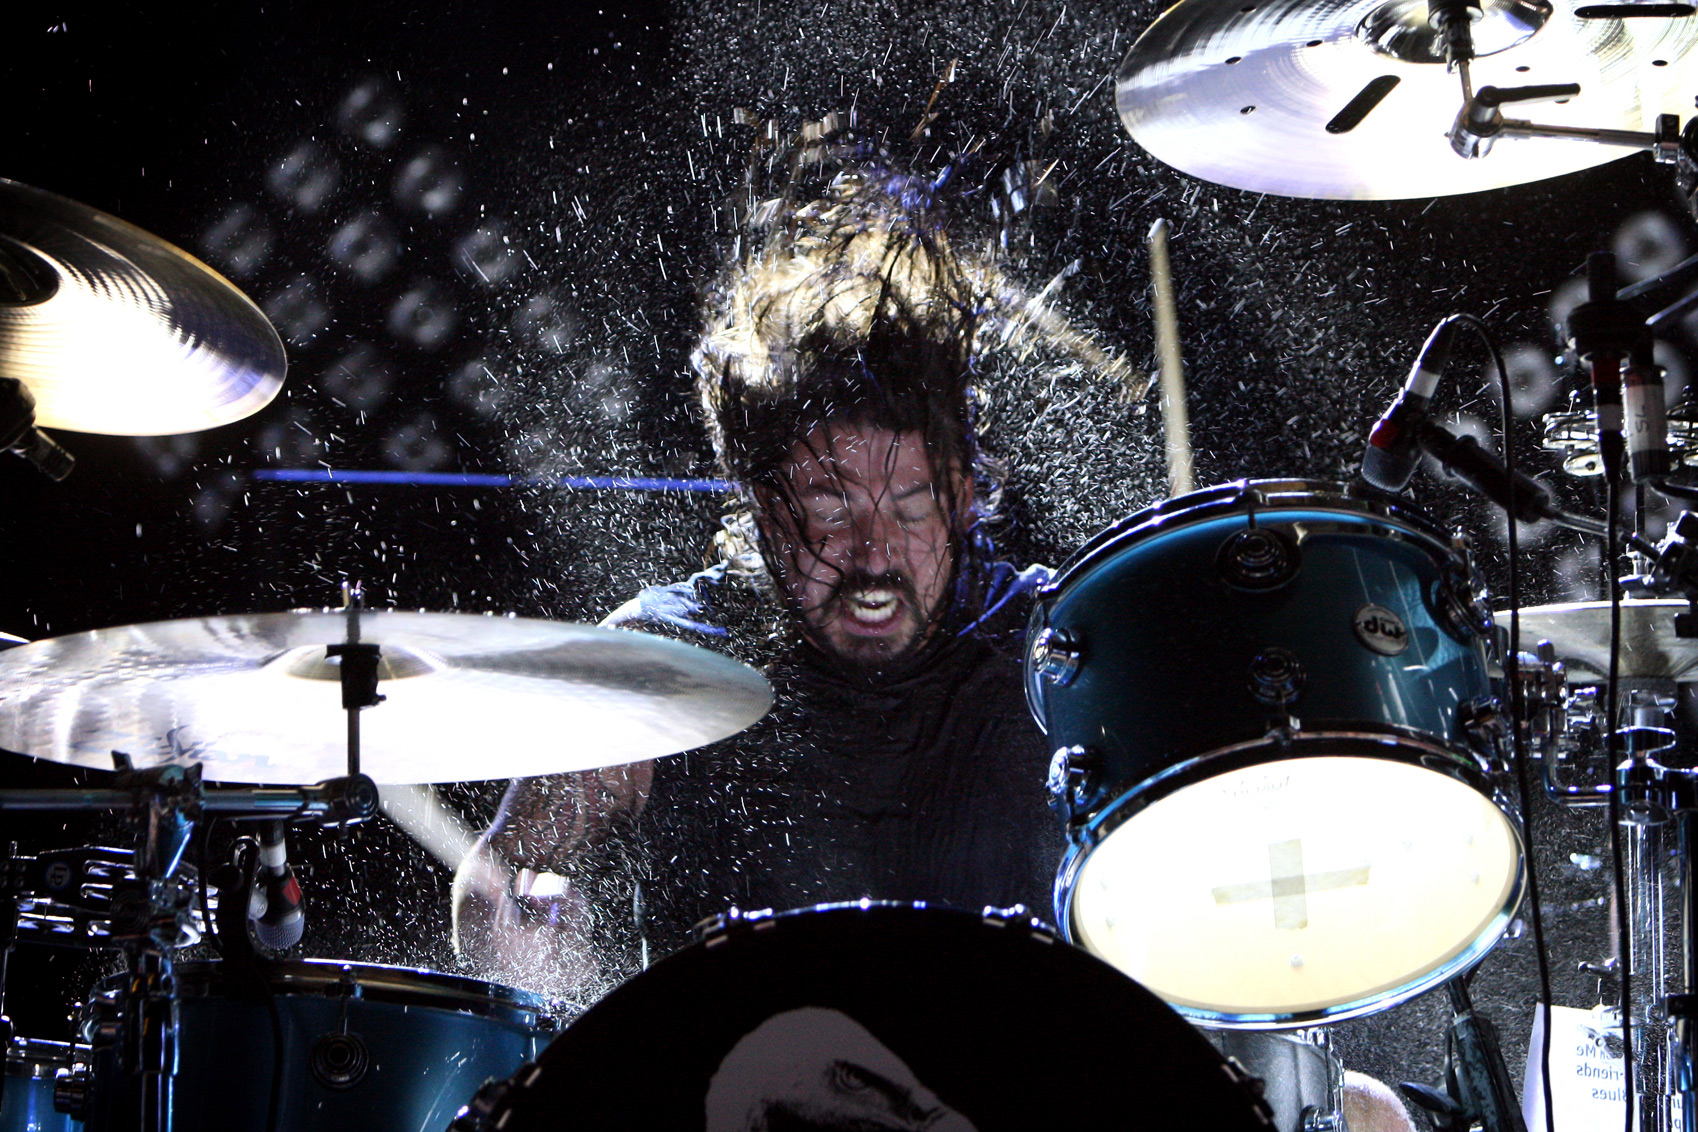 Beyond the stool: drummers in the spotlight